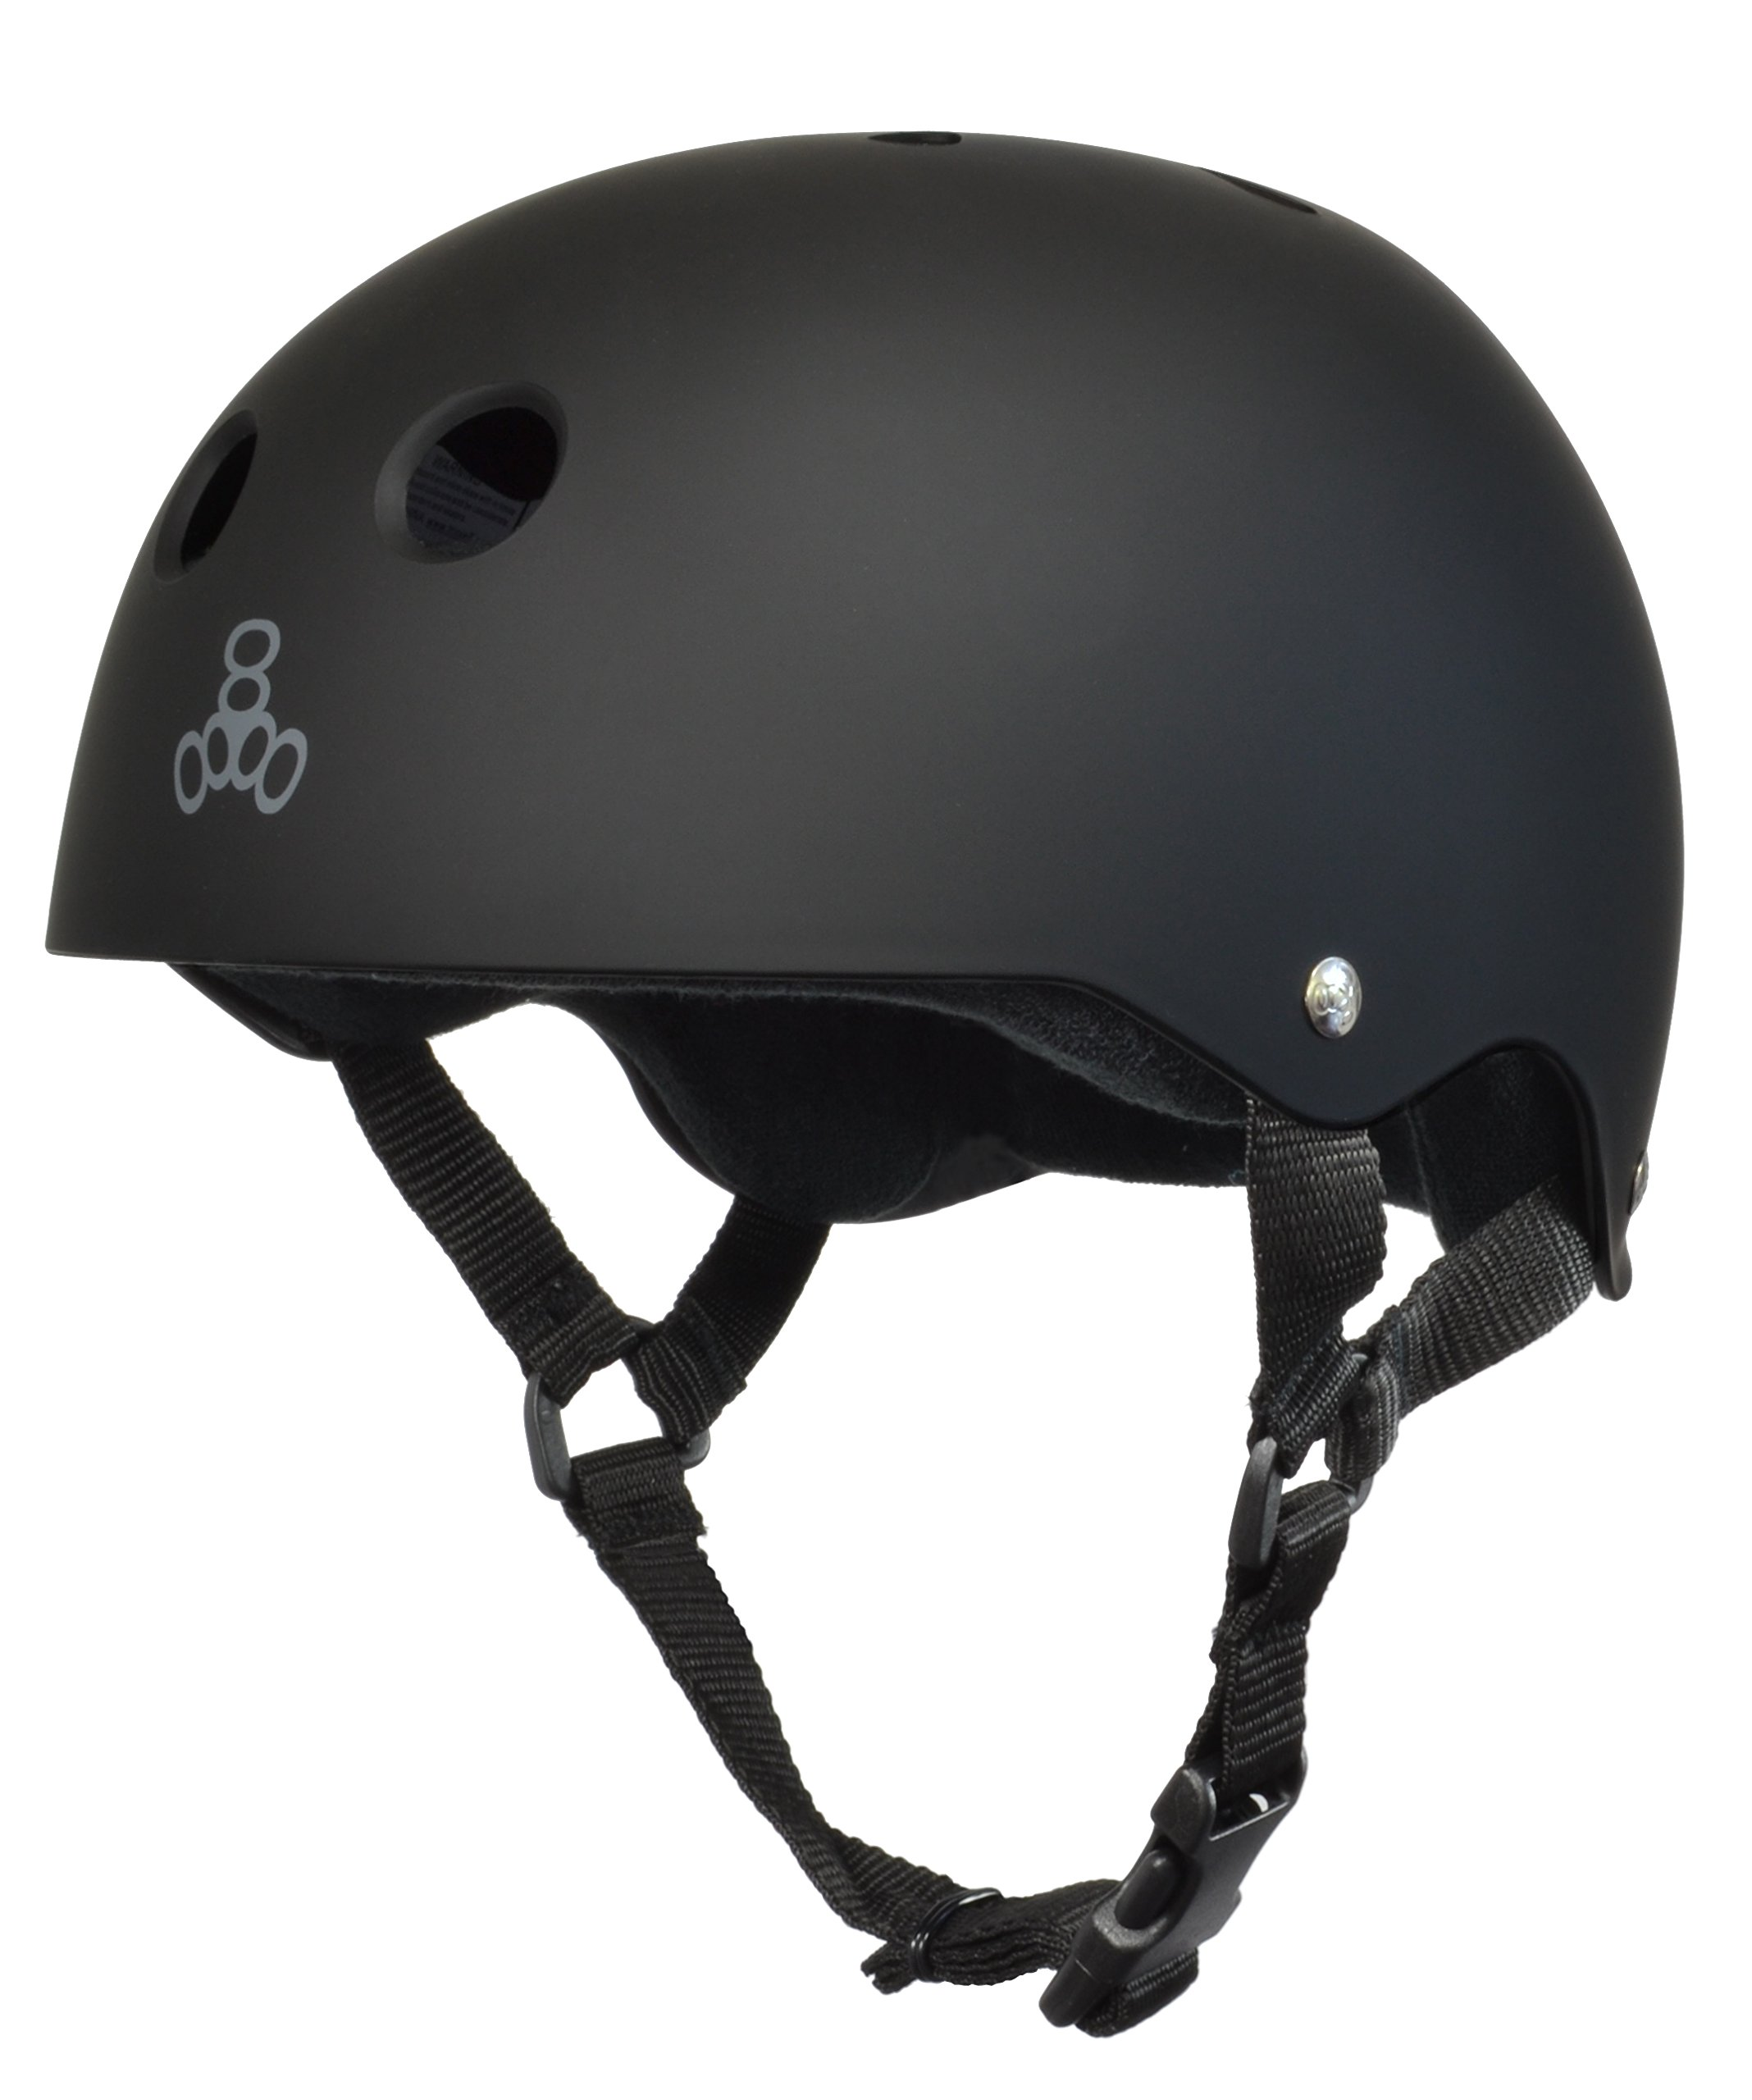 Triple 8 Skateboard Helmet, Black Rubber/Black, Medium